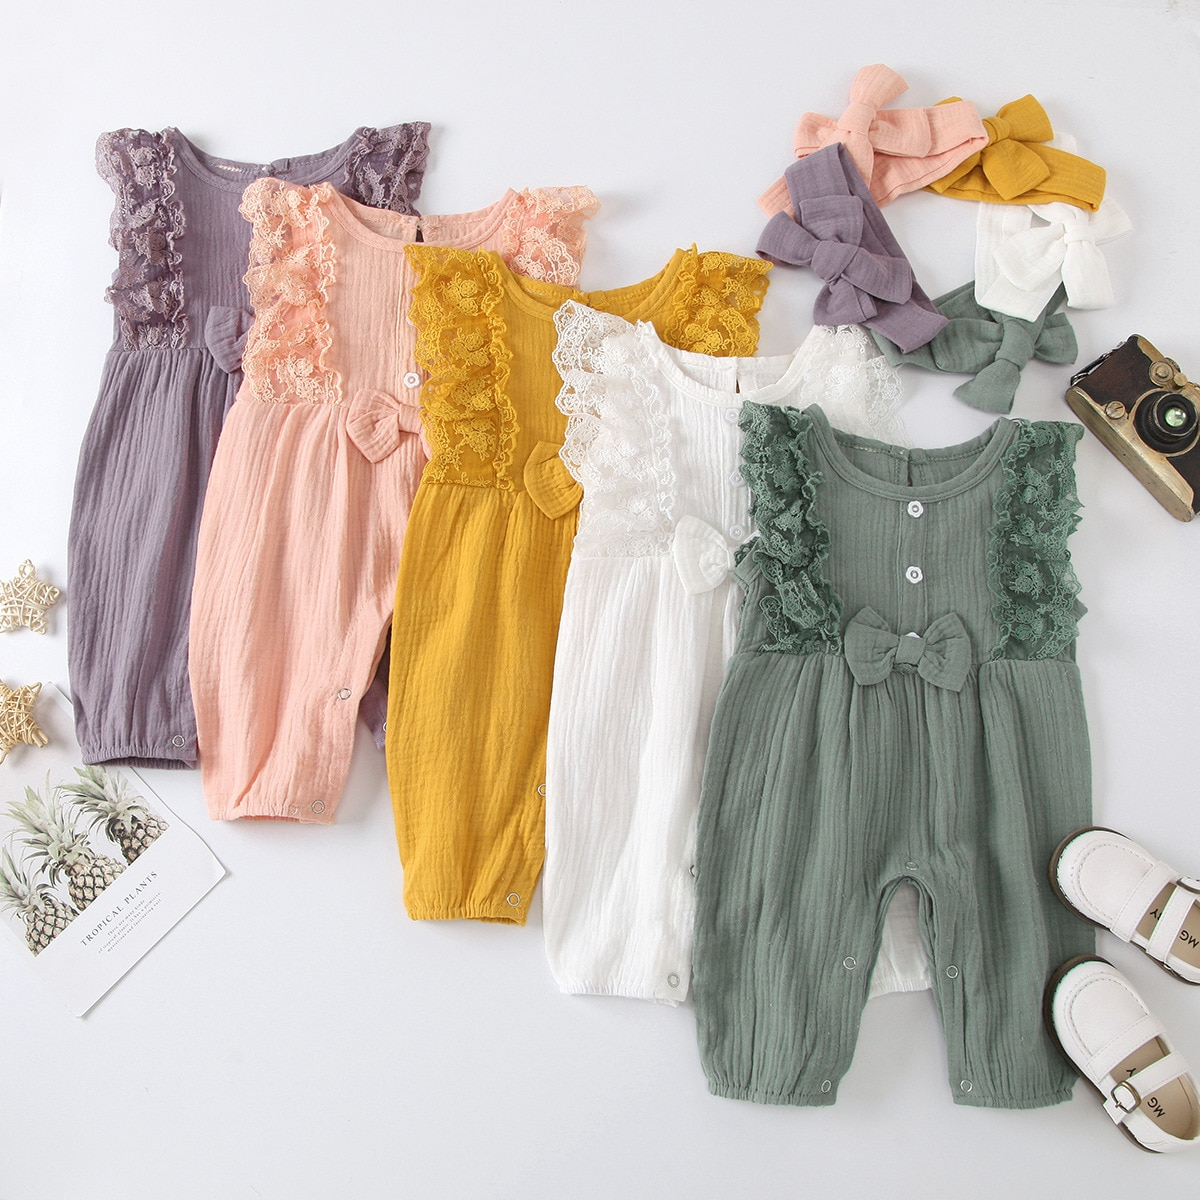 0 3years new babys cotton linen romper summer ruffles sleeveless baby jumpsuit toddler bobo bebe kids children clothes infants New Summer Baby Girls Rompers Solid Cotton Baby Sleeveless Cotton Linen Jumpsuit Toddler Infant Baby Girl Romper Outfits Clothes